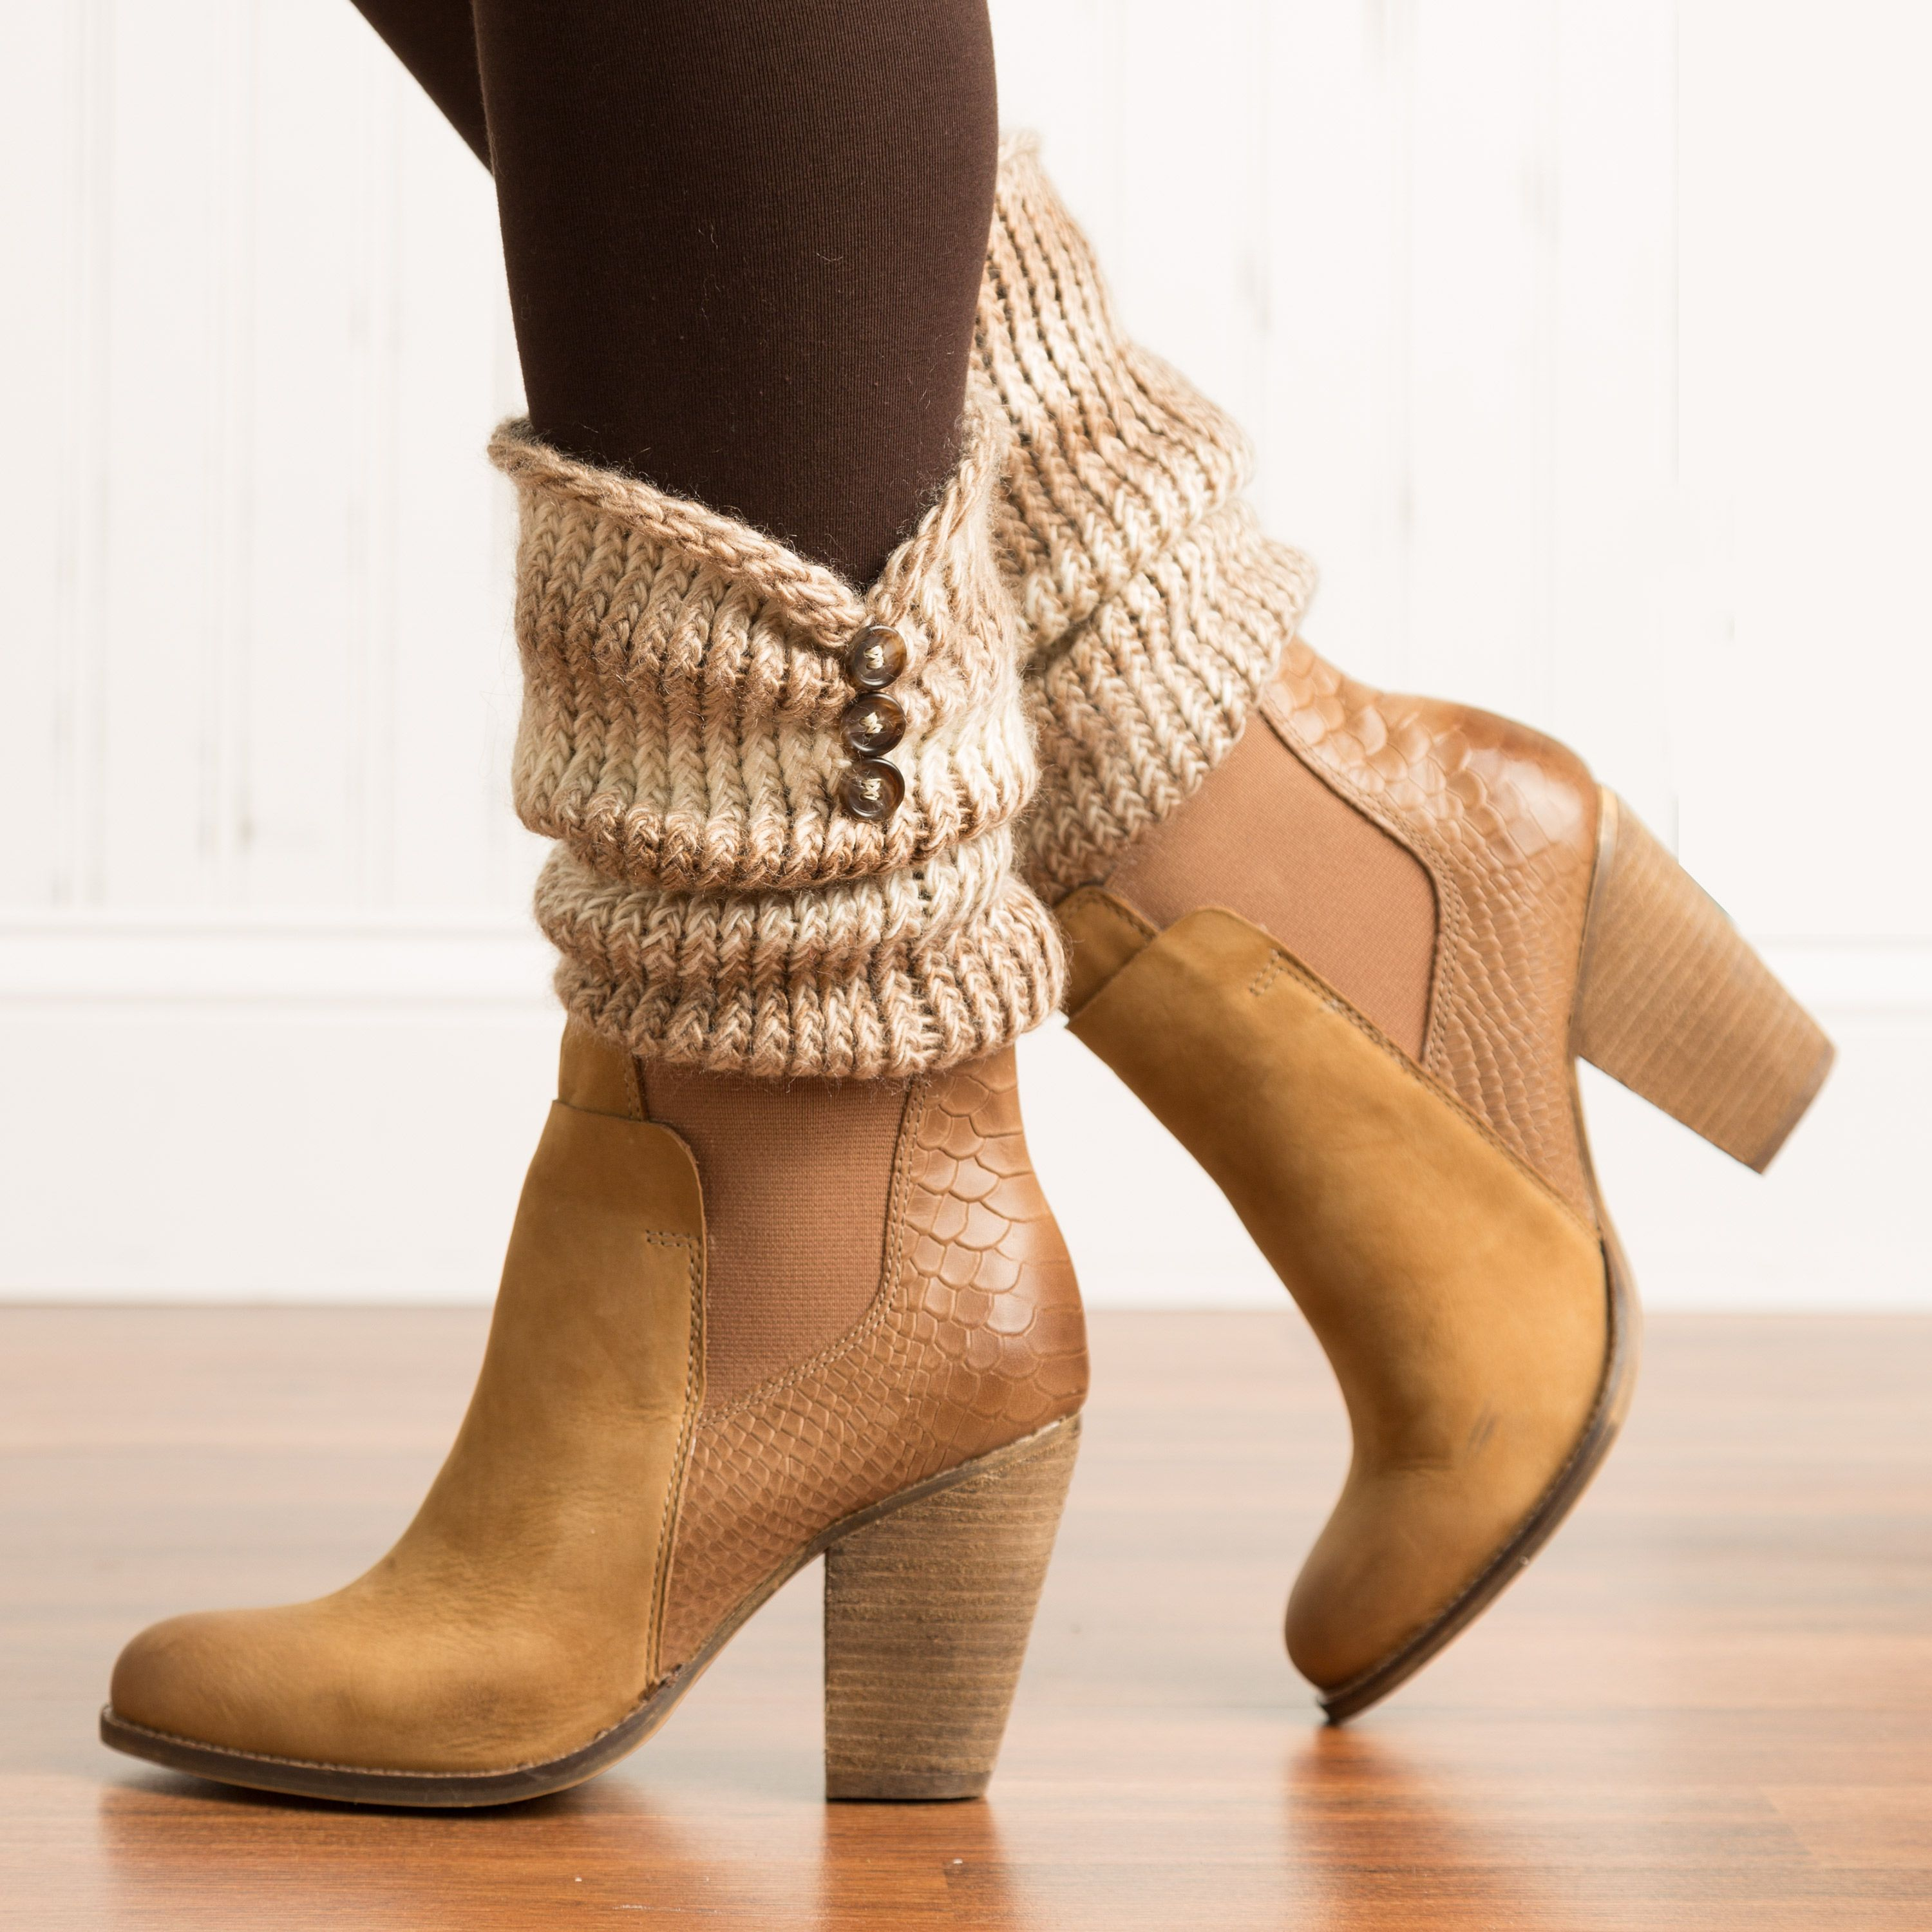 Make fashionable boot cuffs that are crazy easy with a knitting loom! A great accessory with a fashionable button trim finish. Find this free project at Simplicity.com. #bootcuffs